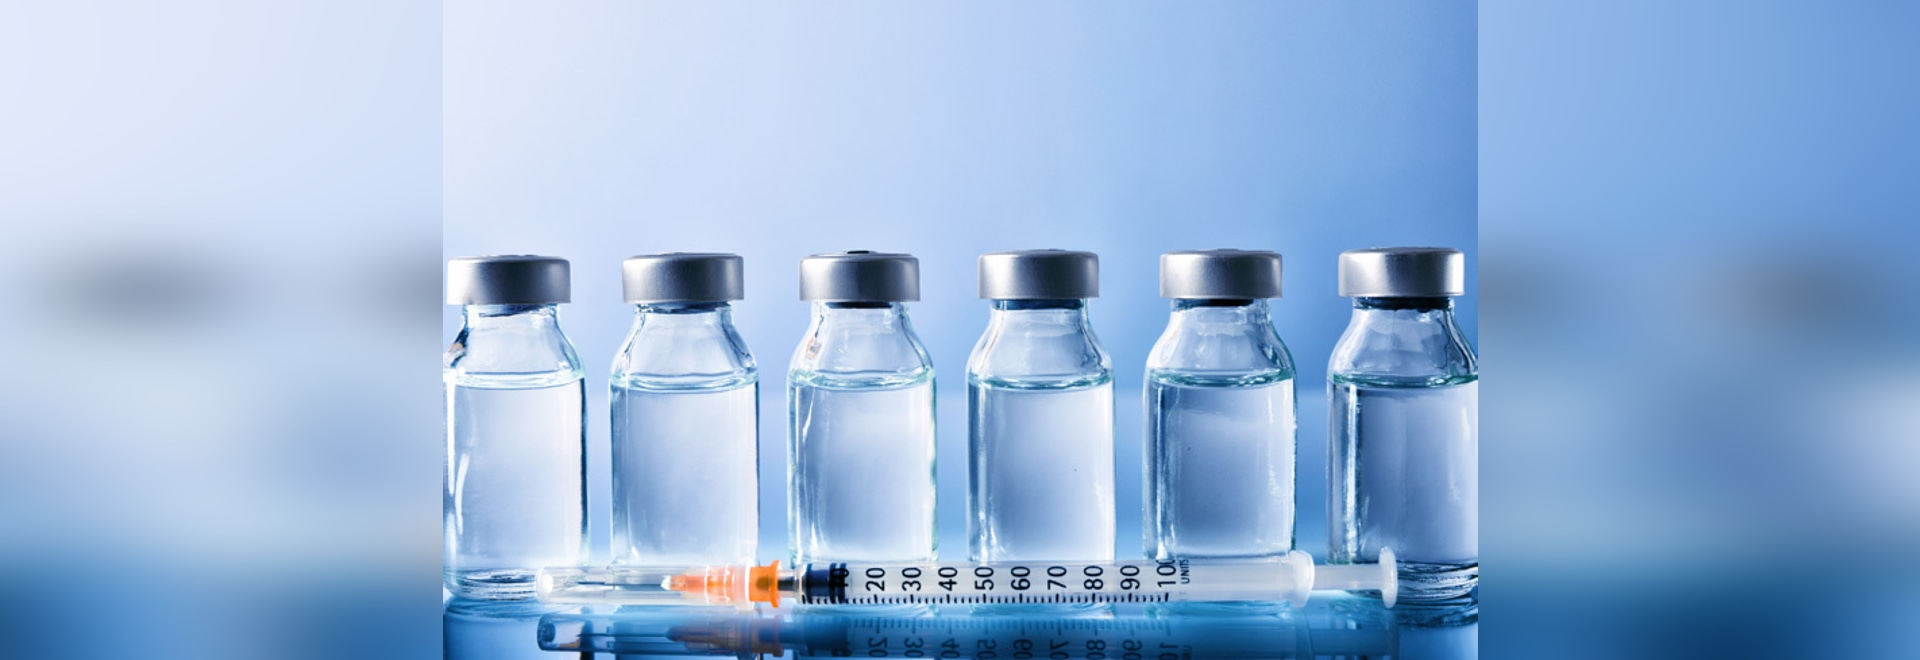 Analytical approaches and regulatory expectations for characterization and control strategies for subvisible particles in biopharmaceutical products